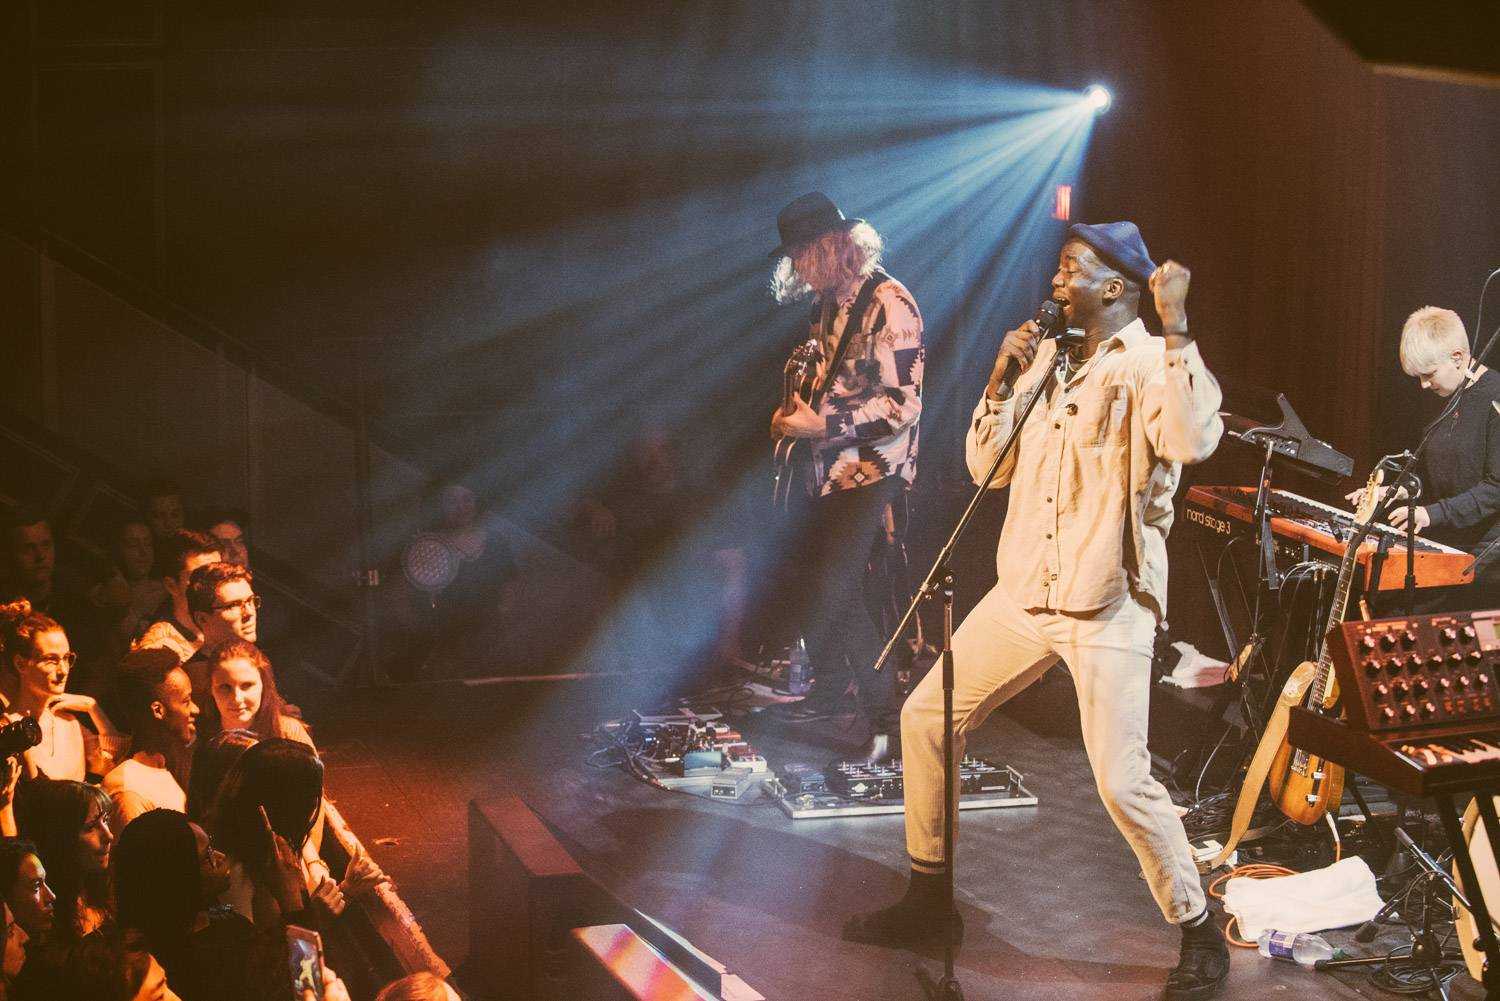 Jacob Banks at the Venue, Vancouver, Jan 19 2019. Pavel Boiko photo.